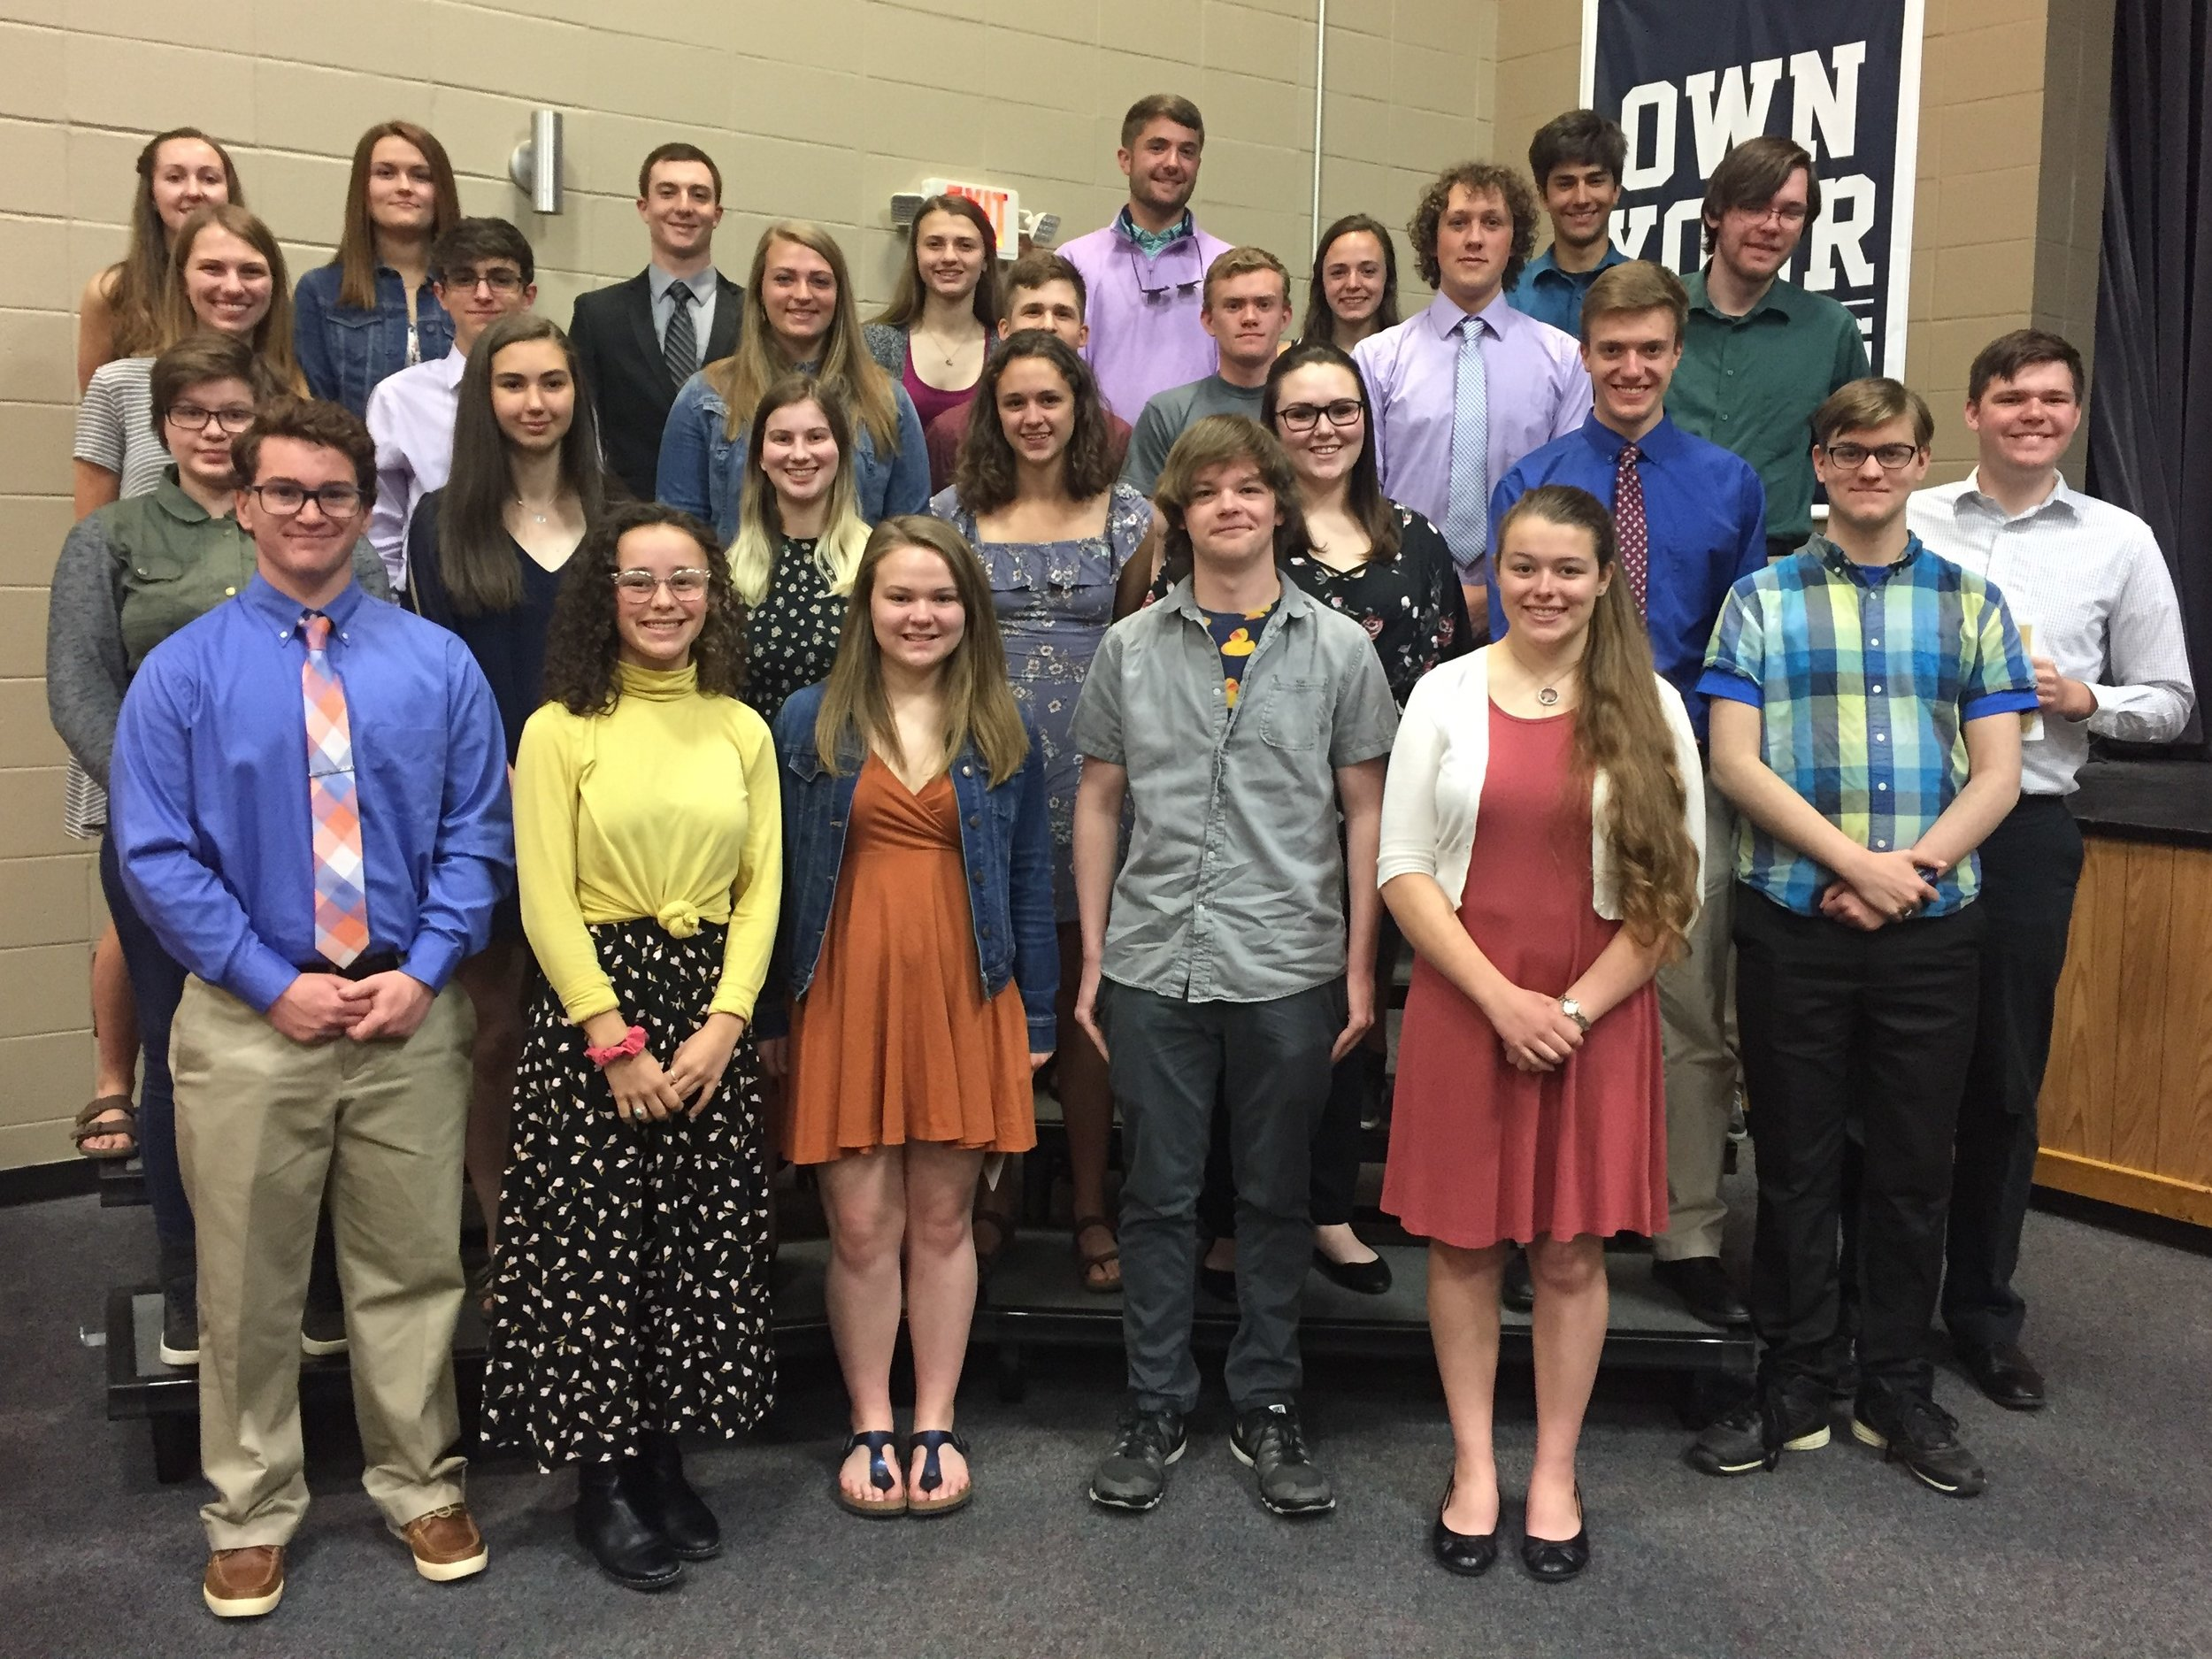 "Front row: Nickolas Heysler - Outstanding CTE, Mt Washington Valley CTC; Isabella Gaetjens-Oleson - Salutatorian, WMRHS; Amy Cotter - Salutatorian, Kennett High School; Carson Smith - Valedictorian, Kennett High School; Samantha Tower - Salutatorian, LinWood School; Austen Keyser - Valedictorian, Pittsburg High School. Second row: Emily Rhonda Fellows - Salutatorian, Colebrook Academy; Nicole Marie Piette - Valedictorian, Littleton High School; Dakota Smith, Valedictorian, LinWood School; Haley Hodgdon - Co-Valedictorian, Profile School; Kassandra Amey; Thomas Oliver - Co-Valedictorian, Profile School; John ""Webb"" Kertis - Salutatorian, Woodsville High School. Third row: Abigail Bernier - Salutatorian, Gorham High School; Bryce Gauthier - Valedictorian, Gorham High School; Madisen Dumont - Outstanding CTE, Hugh J. Gallen CTC; Ethan Riggie - Salutatorian, Lisbon Regional School; Samuel Stiles - Outstanding CTE, Berlin Regional CTC; Samuel Greene - Salutatorian, Profile School; Jim Kertis - Salutatorian, Woodsville High School. Last row: Khaley Styles - Salutatorian - Groveton High School; Brooke Routhier - Valedictorian, Groveton High School; Dylan Benjamin Carpino - Valedictorian, Colebrook Academy; Logan Lopus - Valedictorian, Lisbon Regional School; Joseph DePalma IV - Salutatorian, Littleton High School; Blaine Lachance - Outstanding CTE, Arthur T. Paradice Regional CTE; Sunjay Sood - Valedictorian, White Mountains Regional High School. Missing from photo: Joshua Berthiaume - Valedictorian, Berlin High School; Kelsey Alimandi - Salutatorian, Berlin High School."